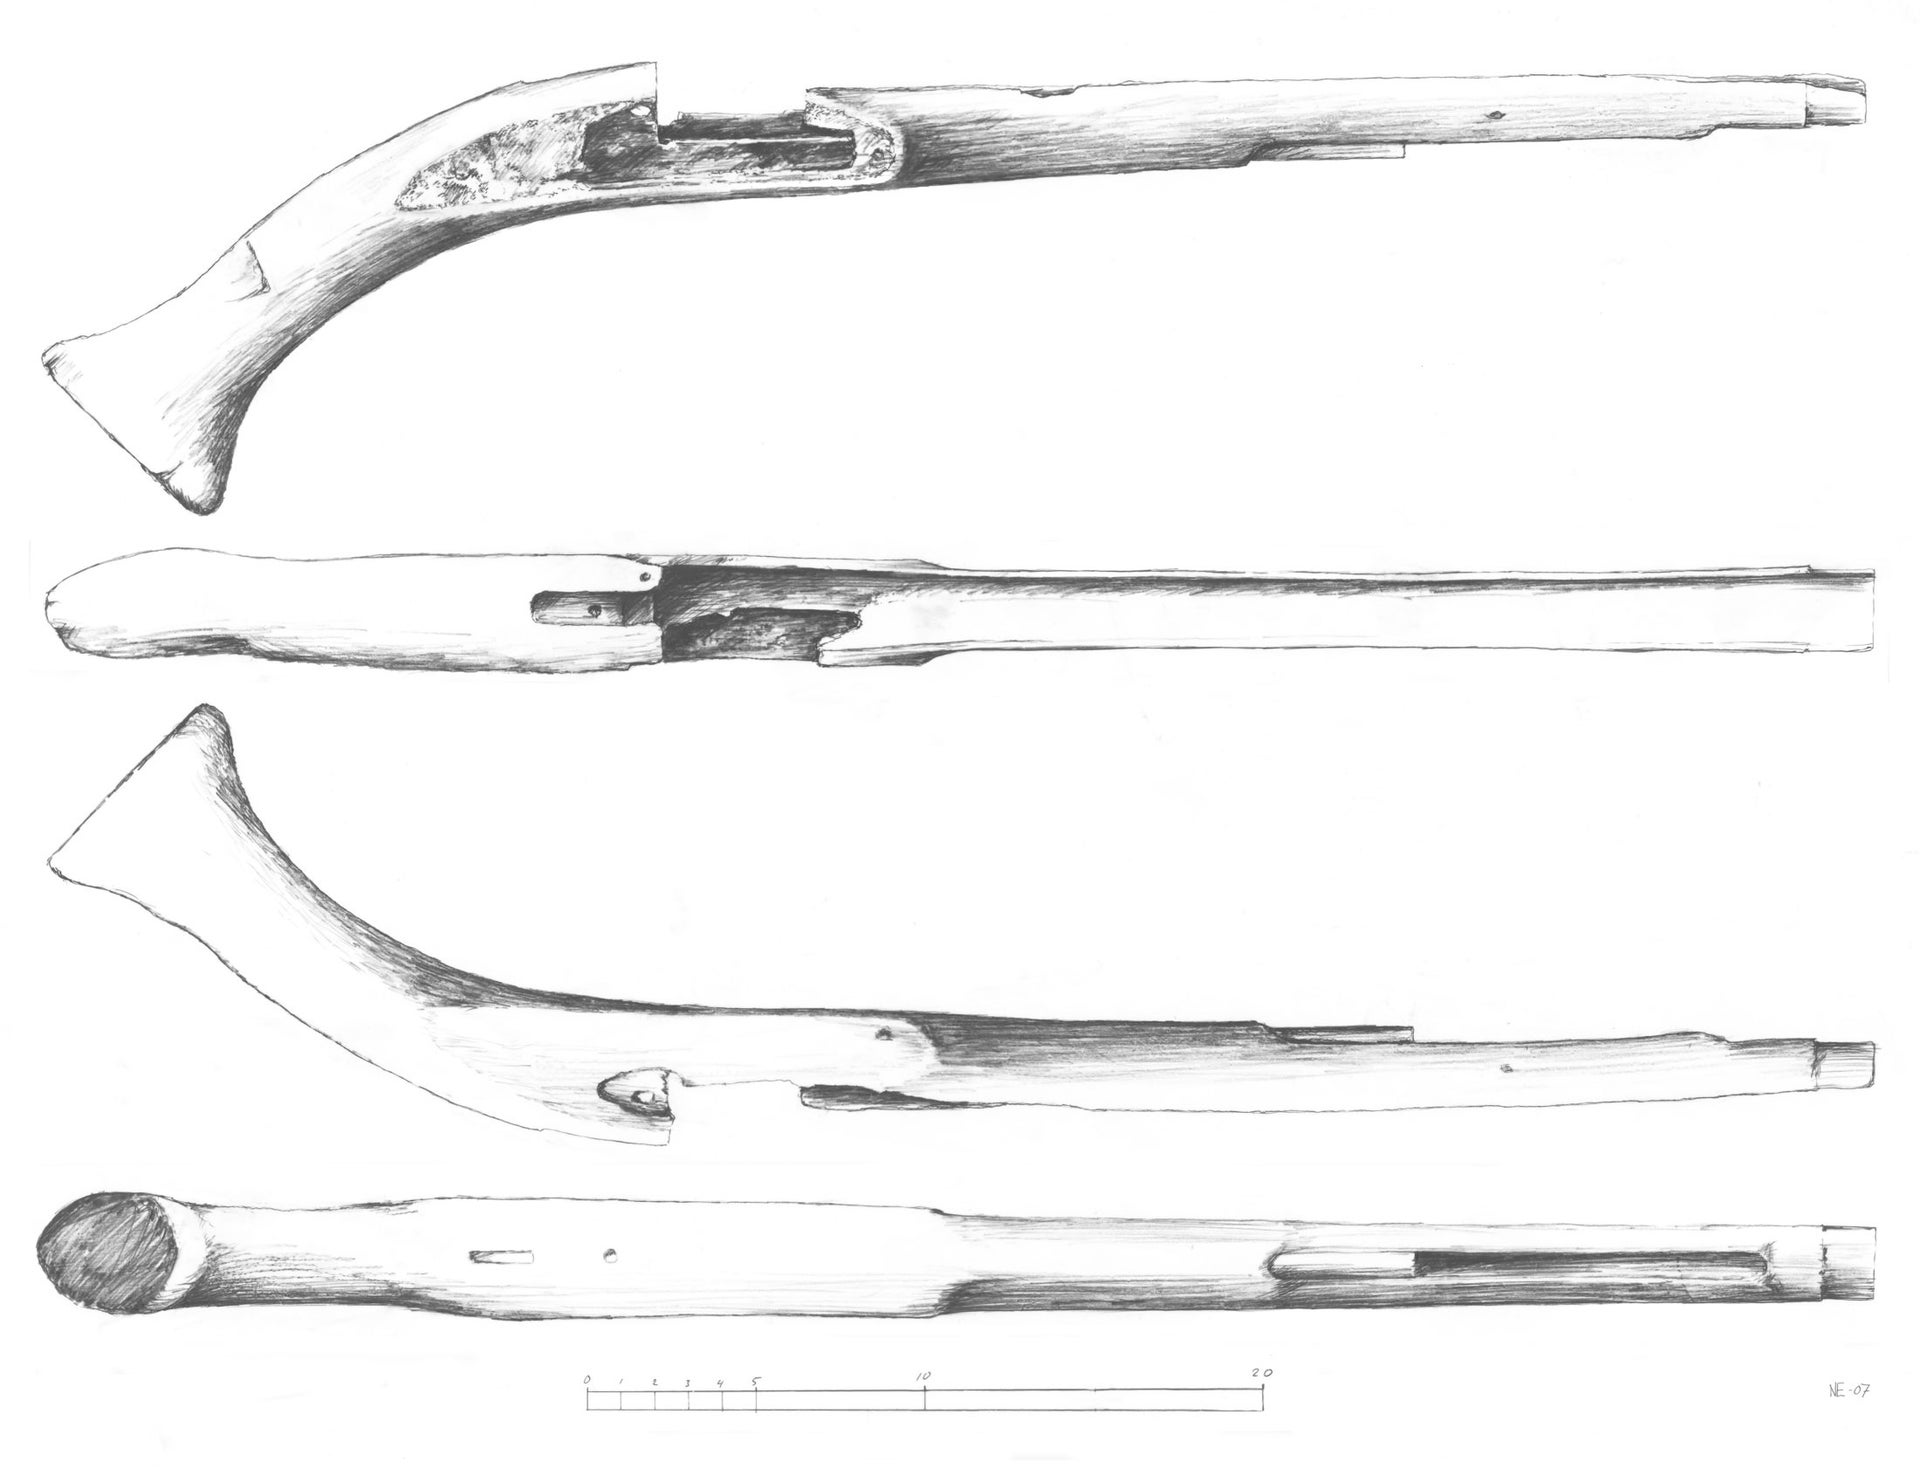 Drawing of flintlock pistol that was recorded and brought back to its original position on the site.